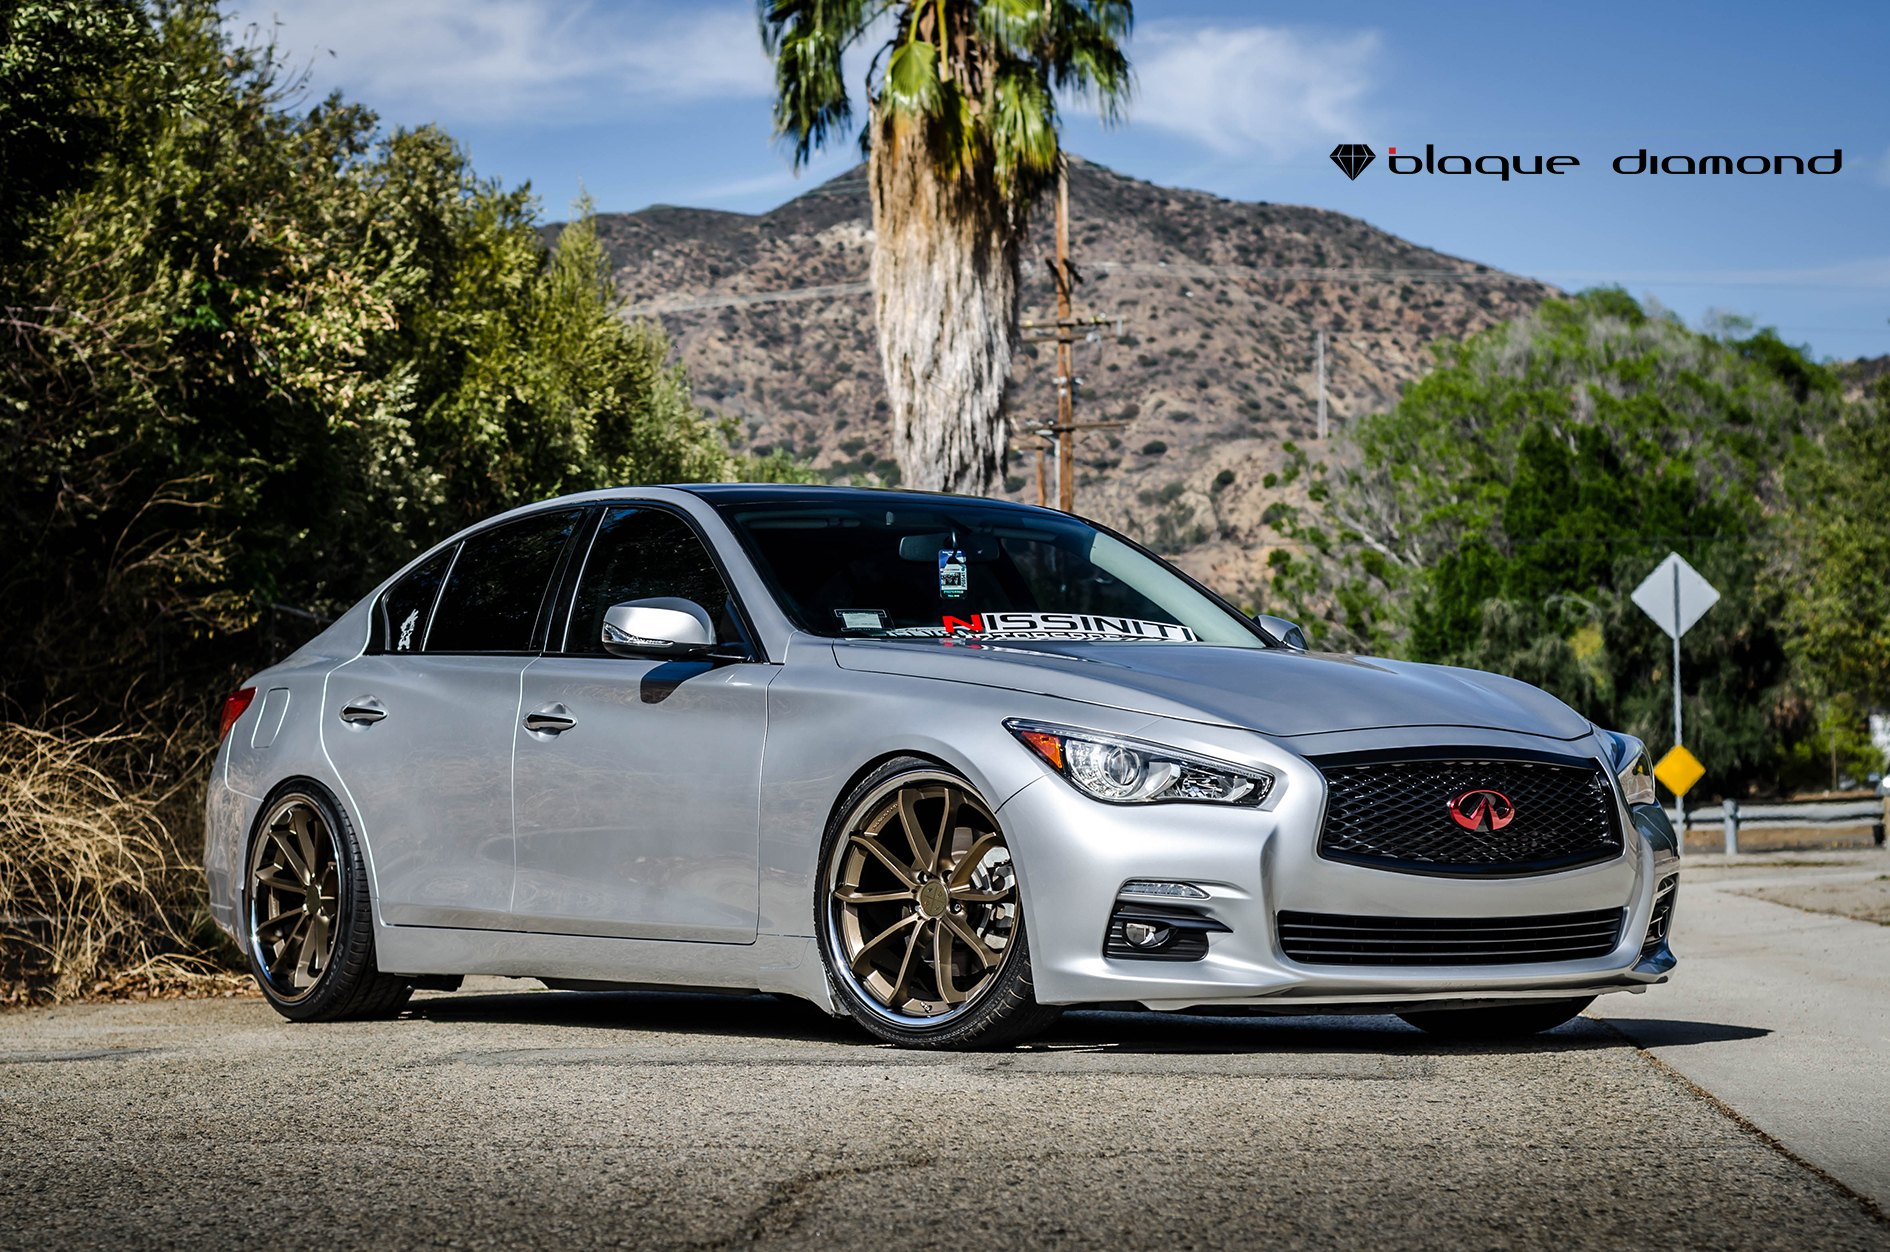 Q50 For Sale >> Exclusive Face of Silver Infiniti Q50 with Custom Grille and Emblem — CARiD.com Gallery